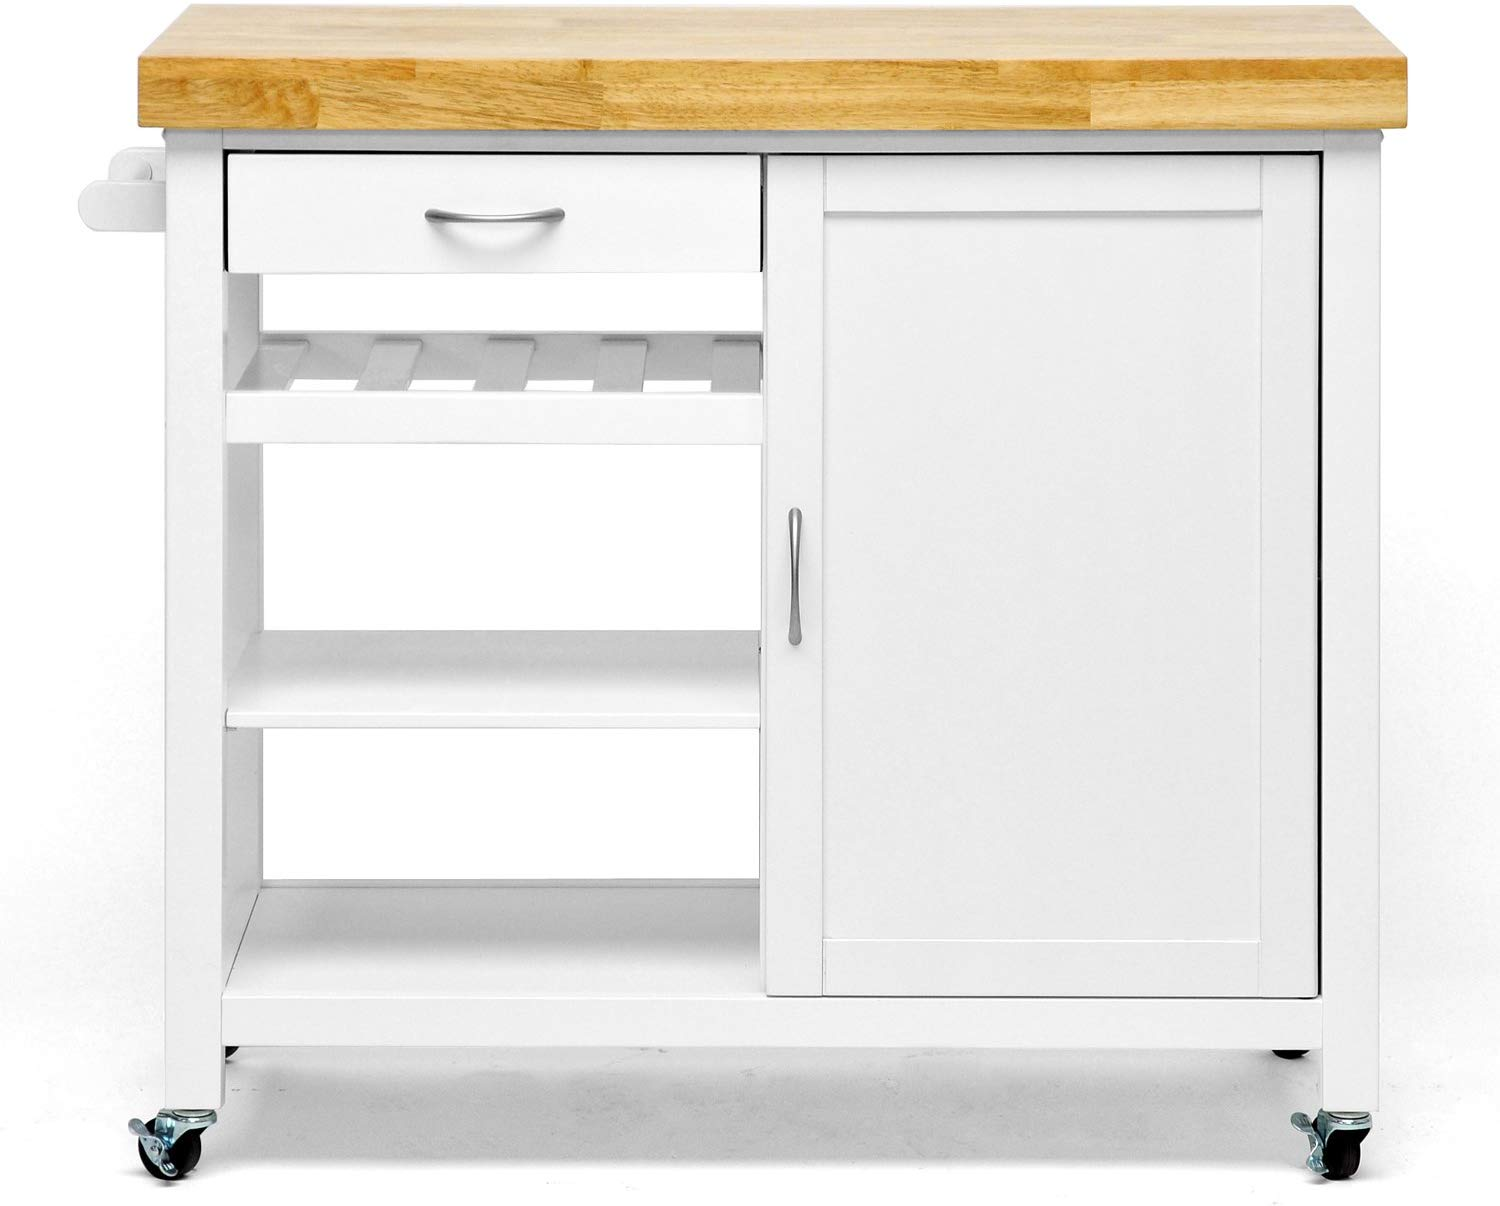 24 x 48 Rolling Kitchen Island